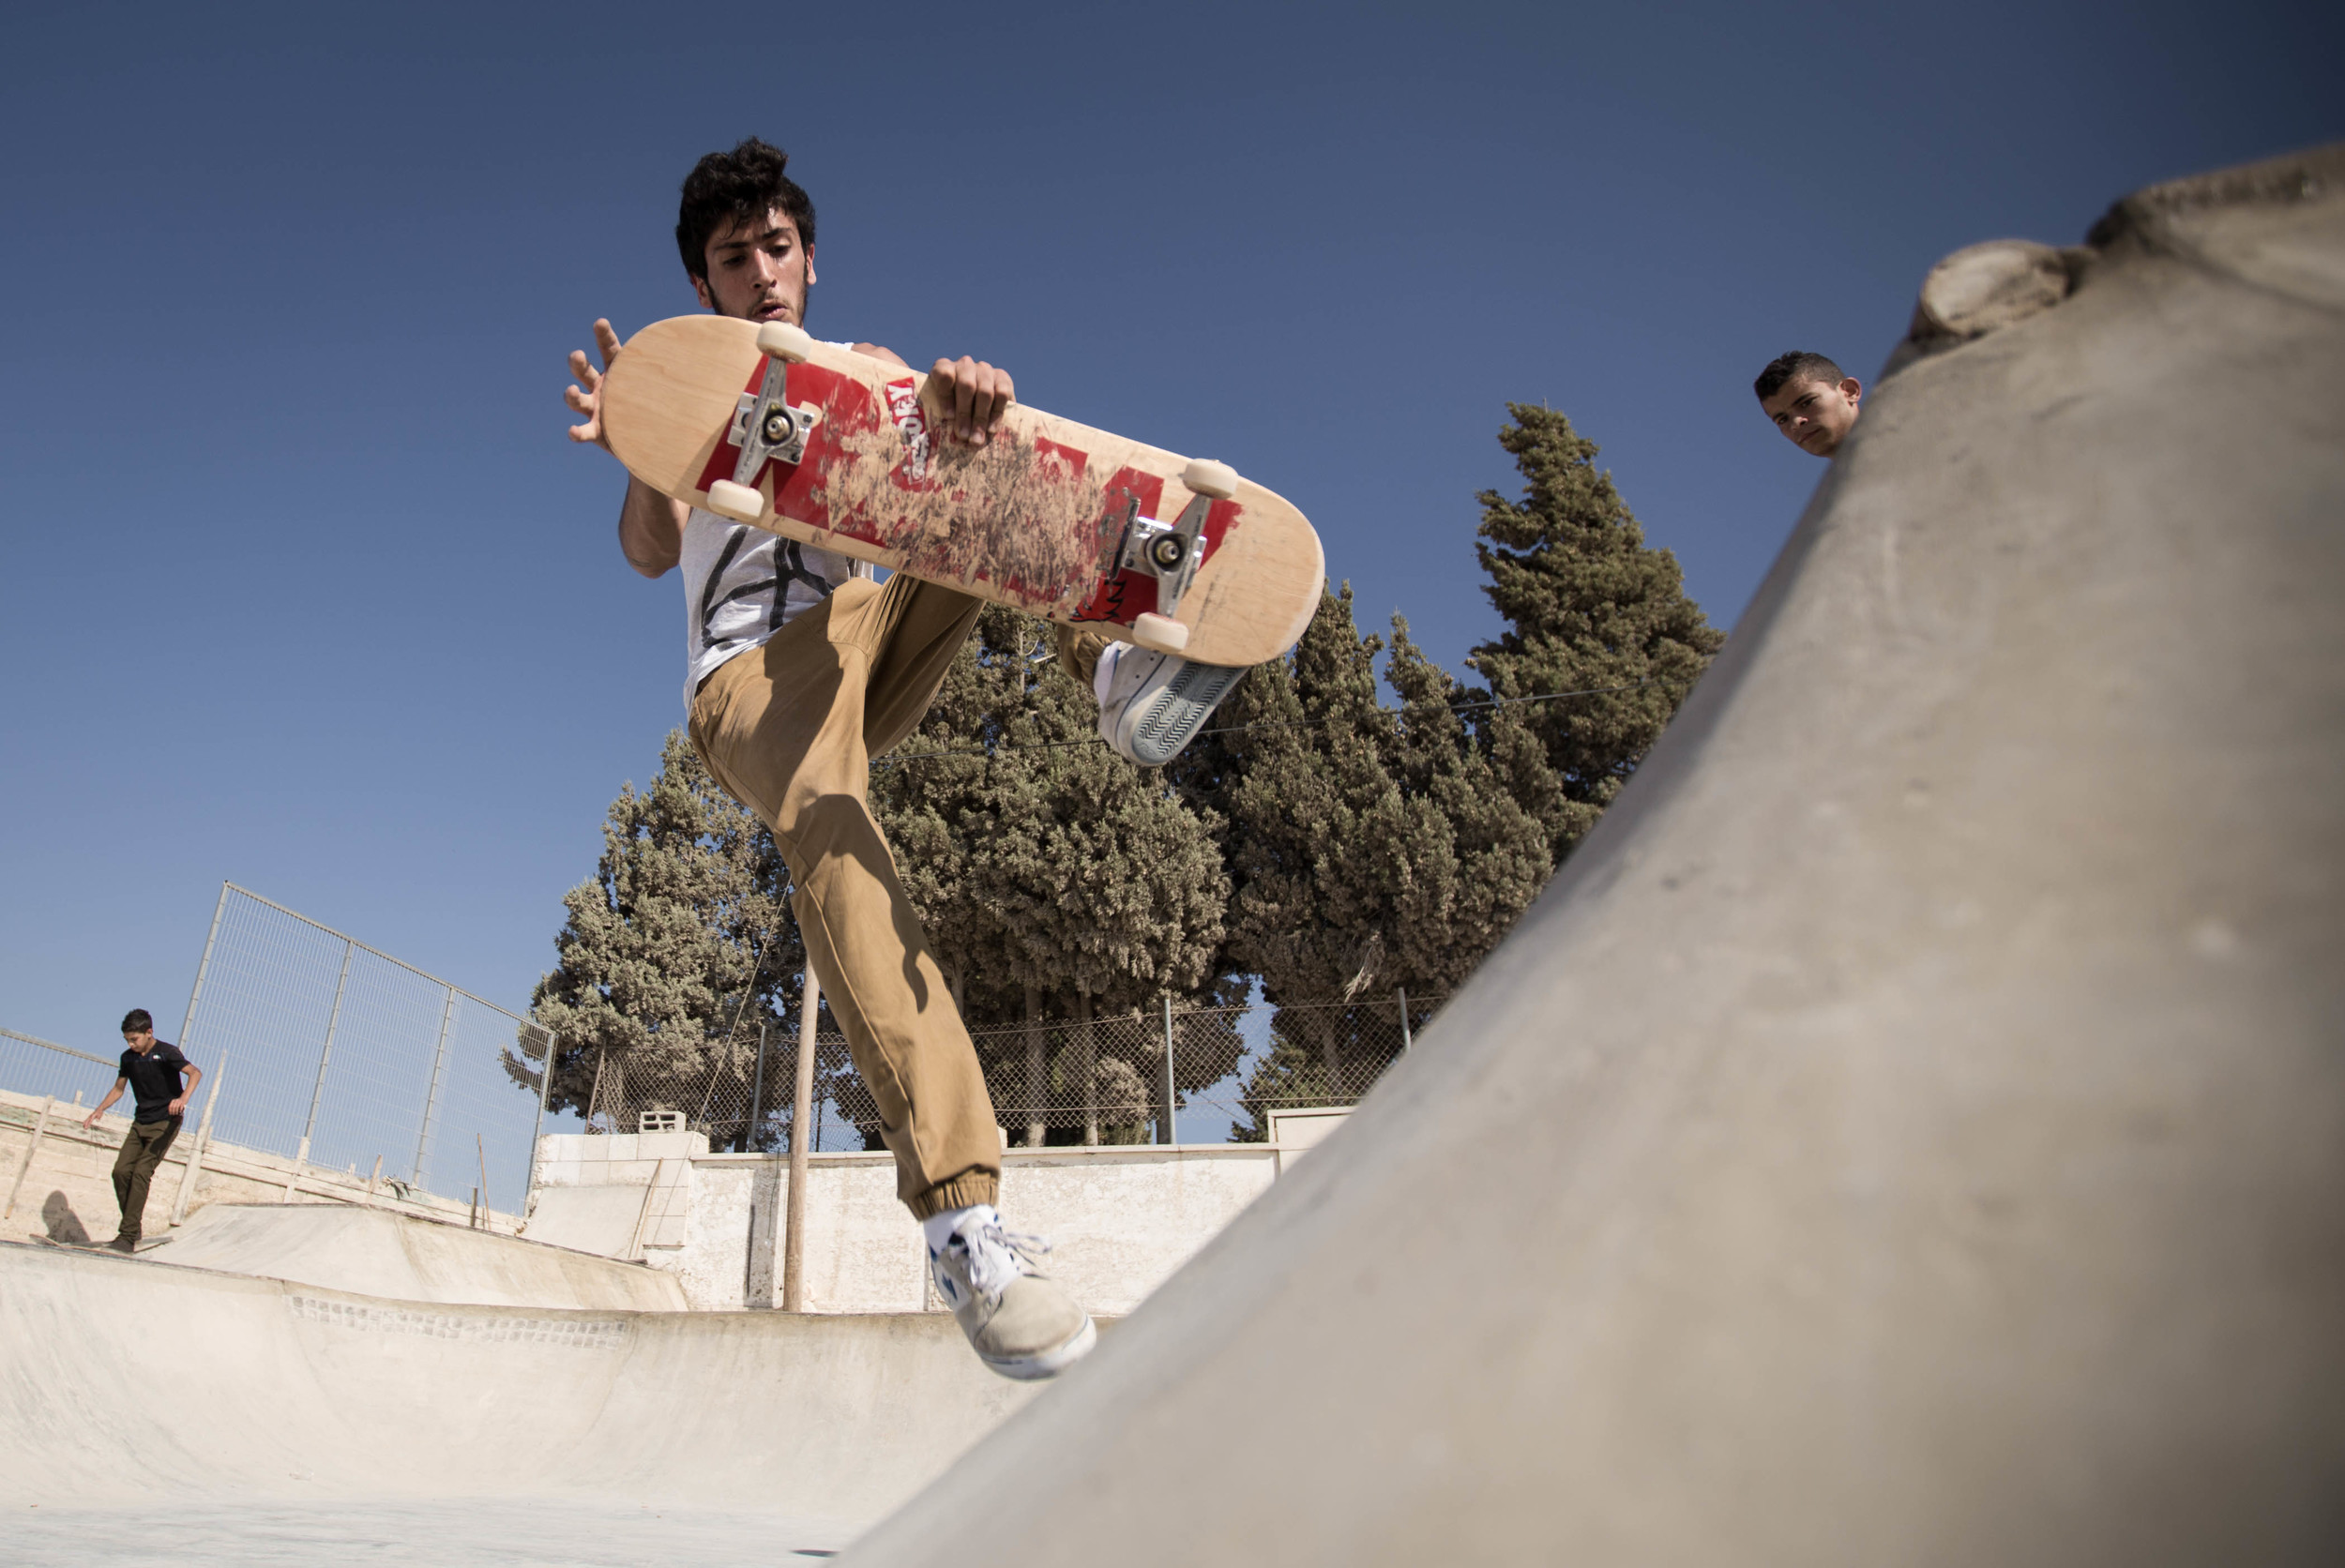 Aram tests out the mini-ramp at Rosa Park with a boneless, Asira Al-Shamaliya, 2015. Photo: Emil Agerskov